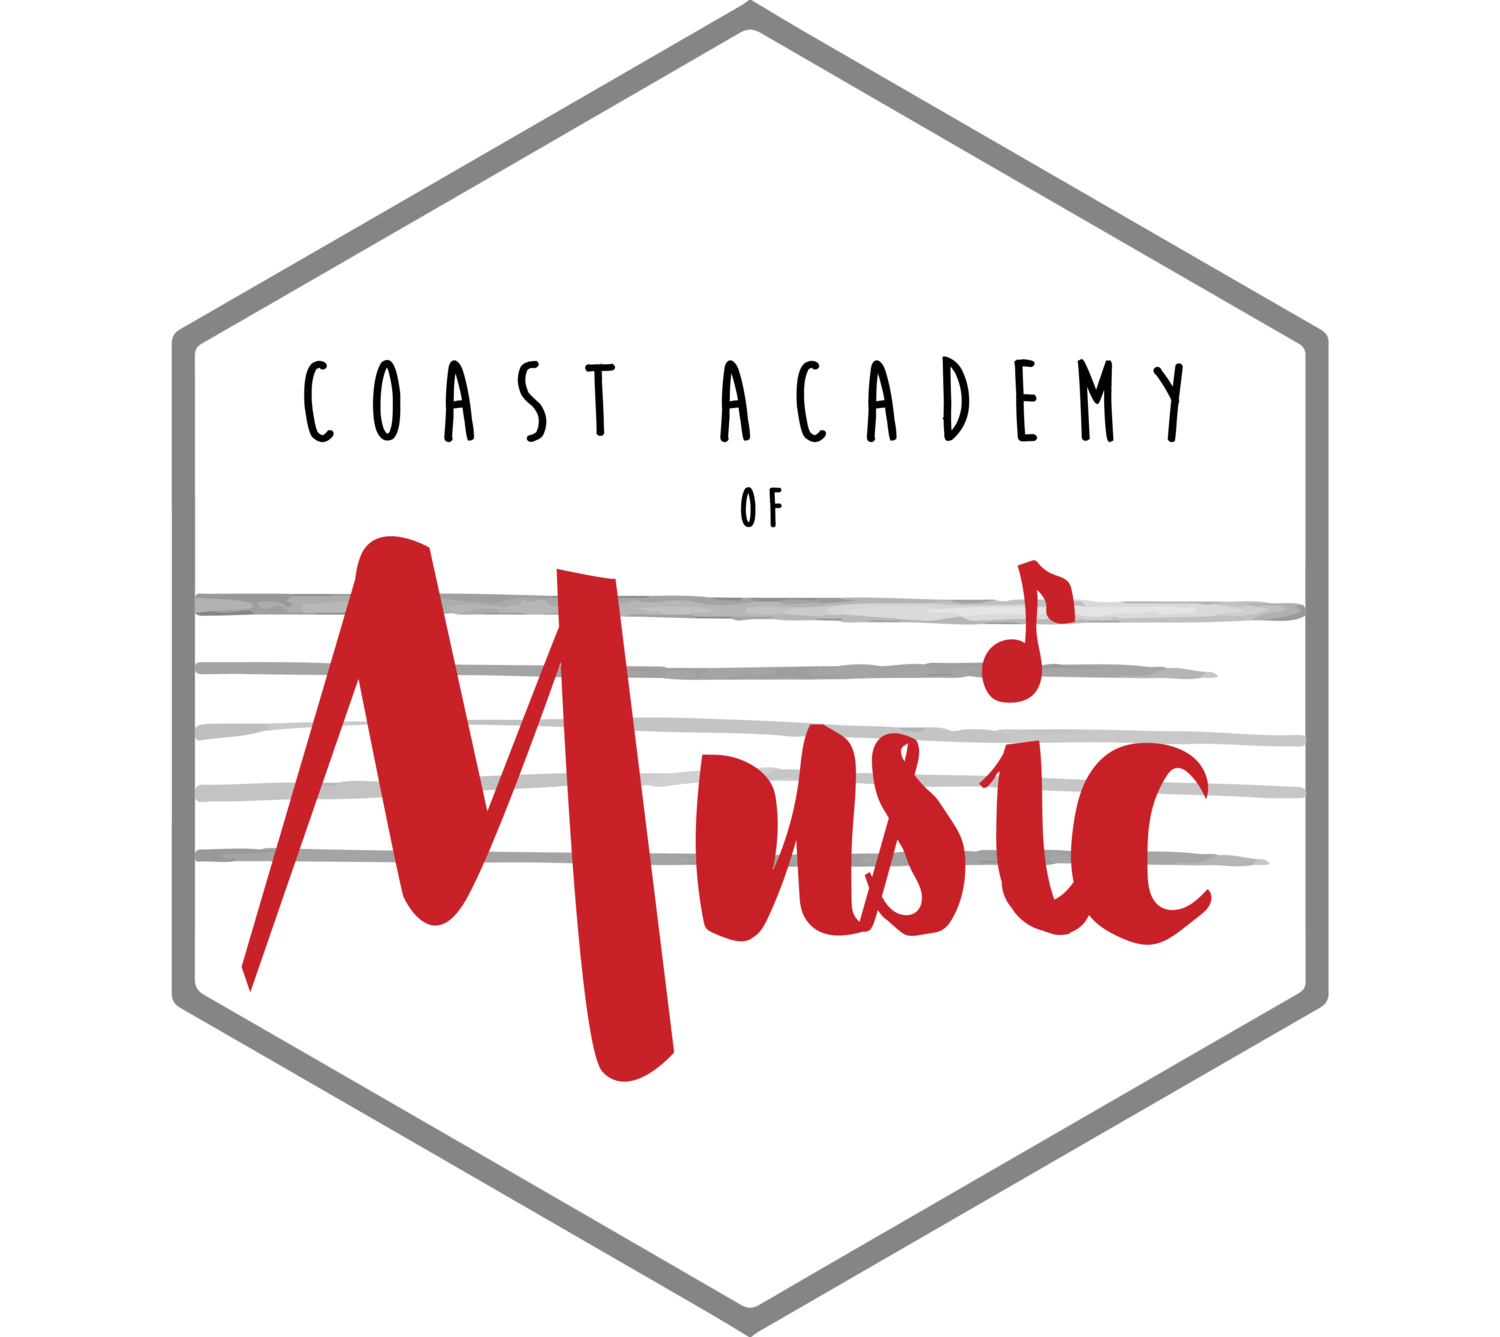 Coast Academy of Music